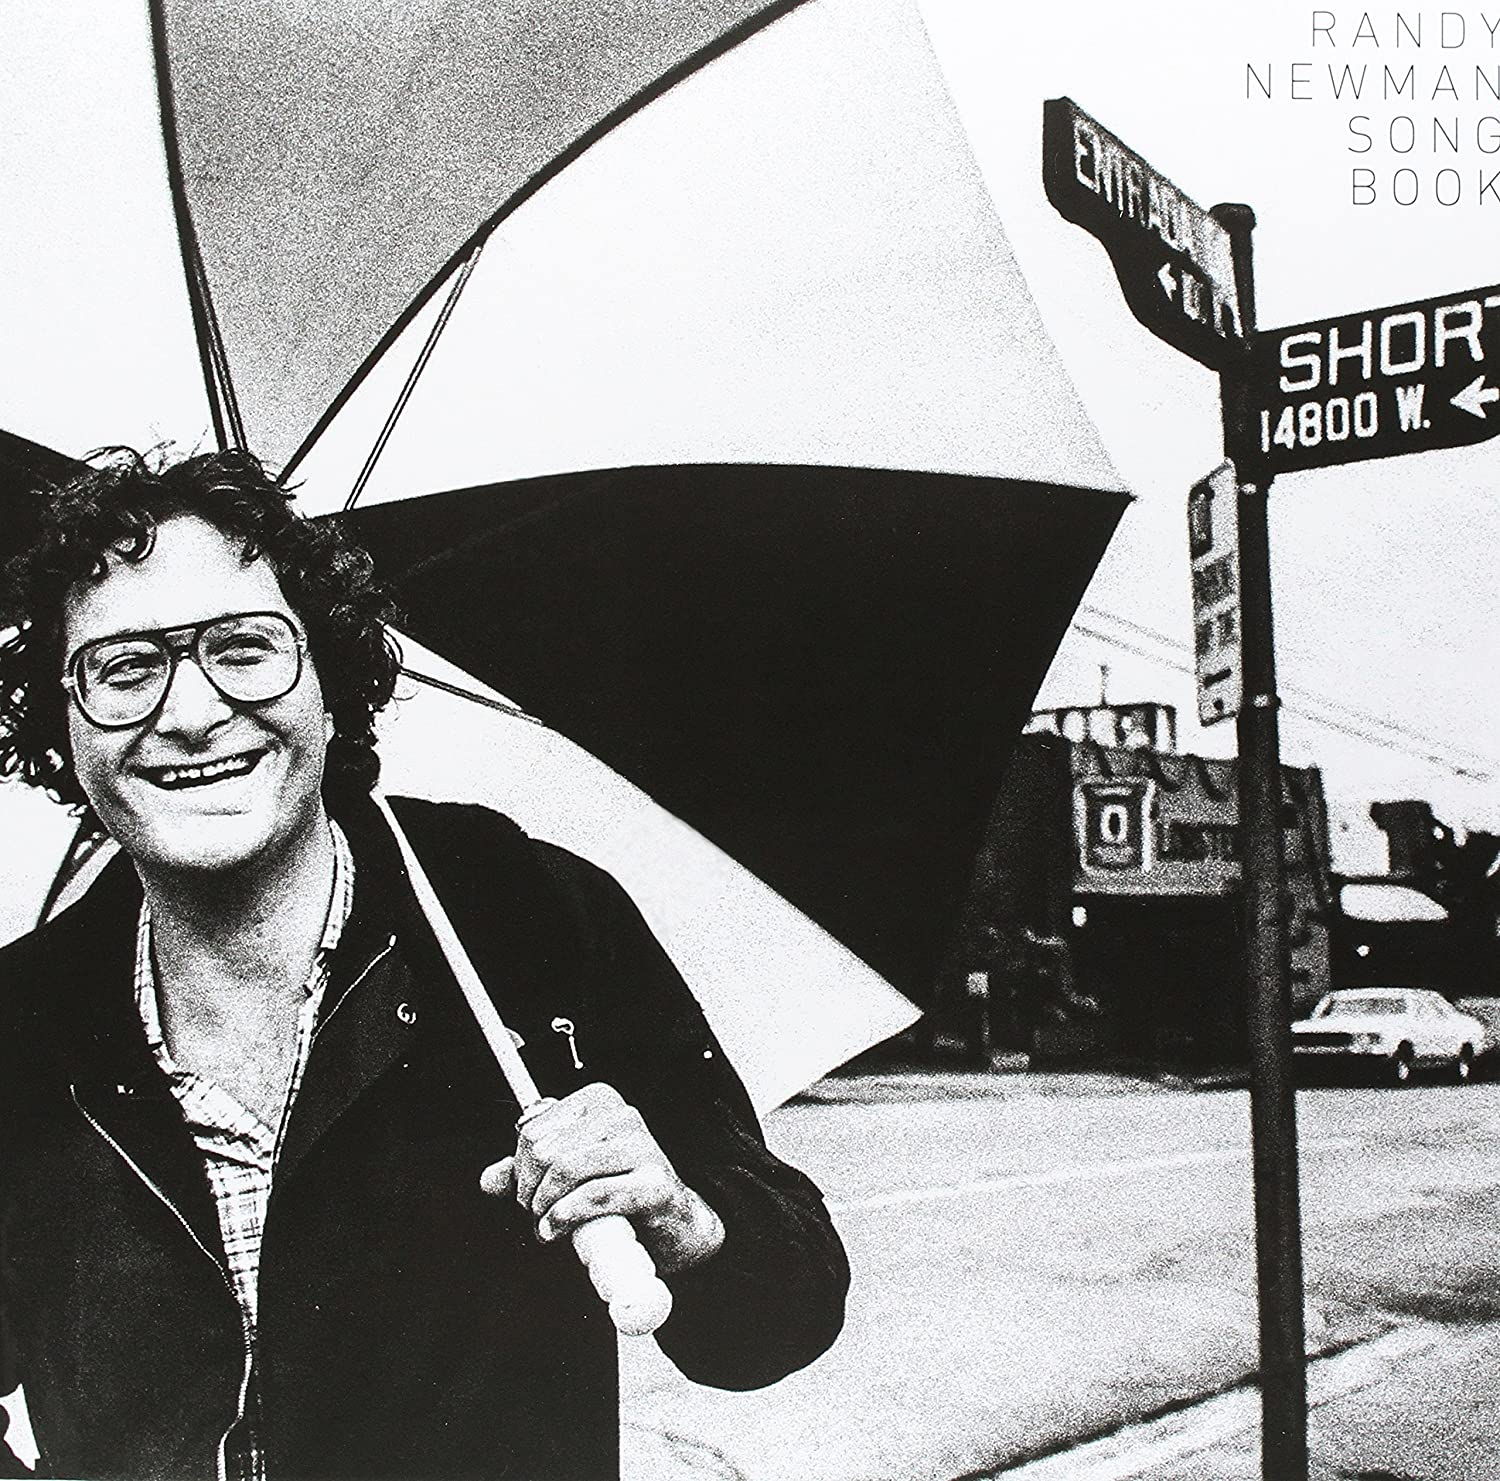 RANDY NEWMAN SONGBOOK [12 inch Analog]                                                                                                                                                                                                                                                                                                                                                                                                <span class=